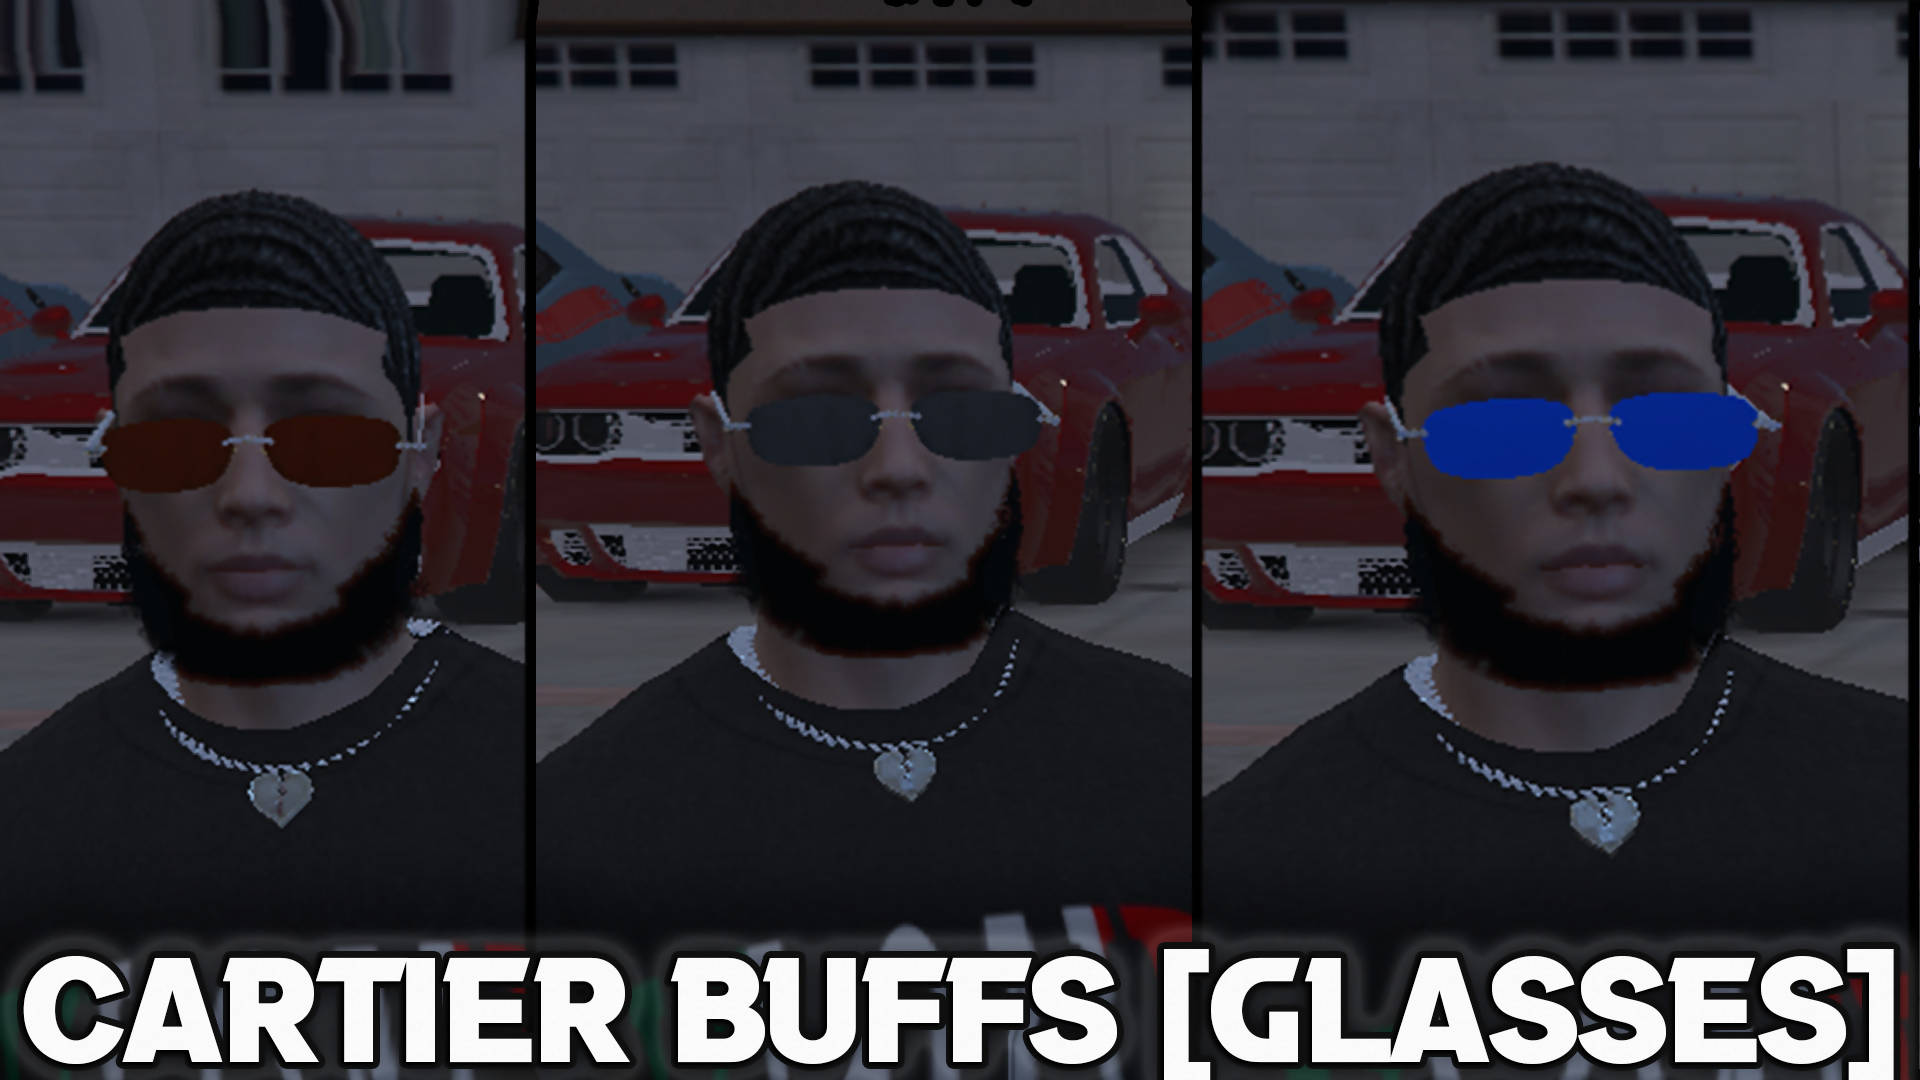 Cartier Buffs [Glasses] | [Custom 3D Model]